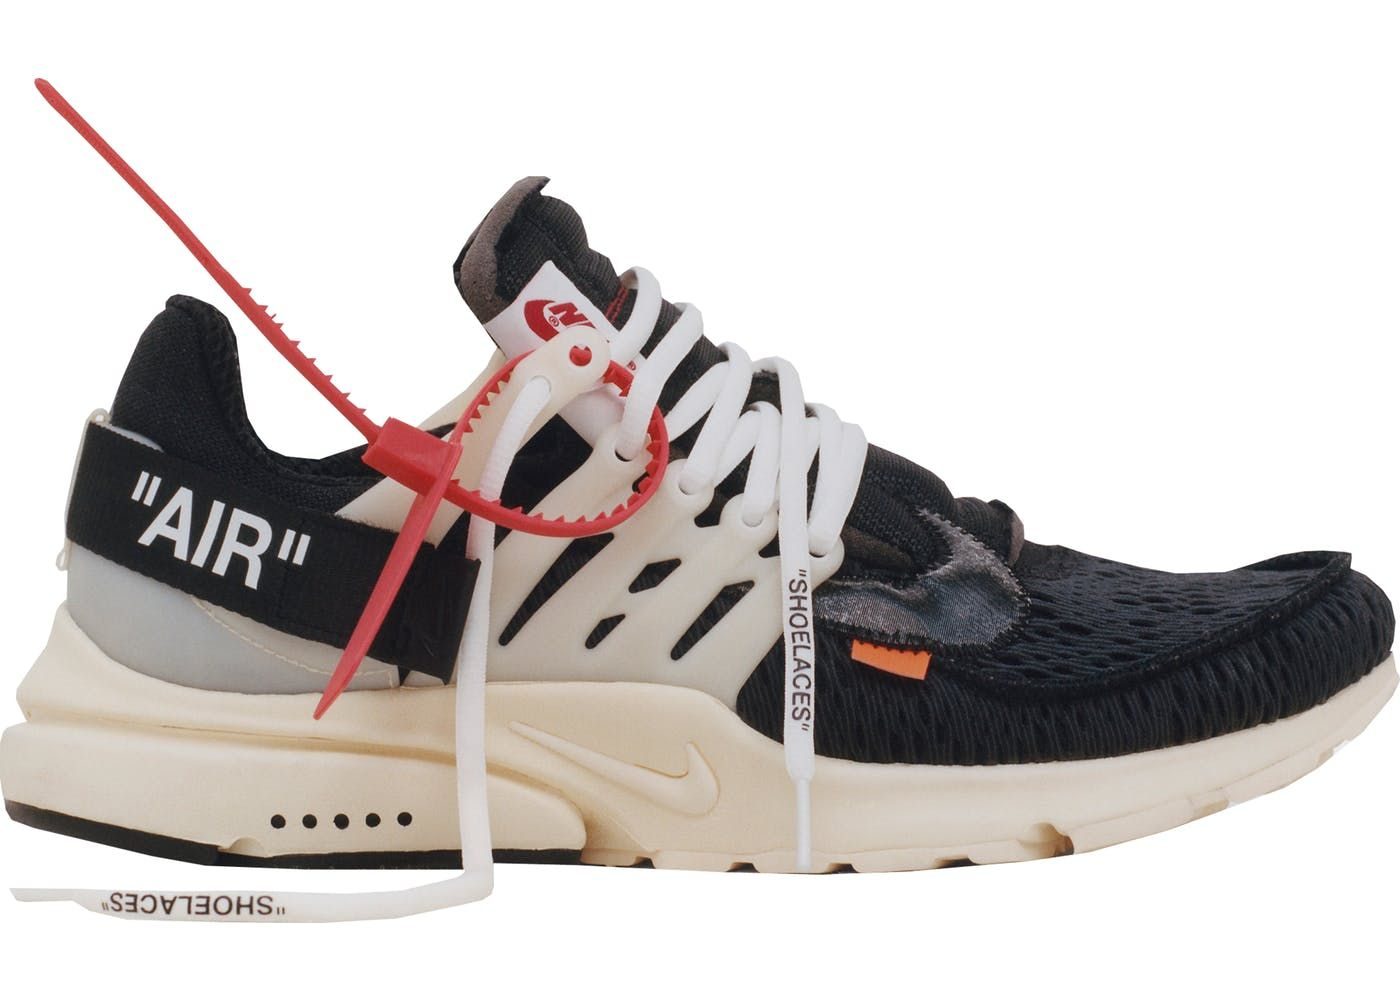 Explore Air Presto, Sneakers Nike, and more!